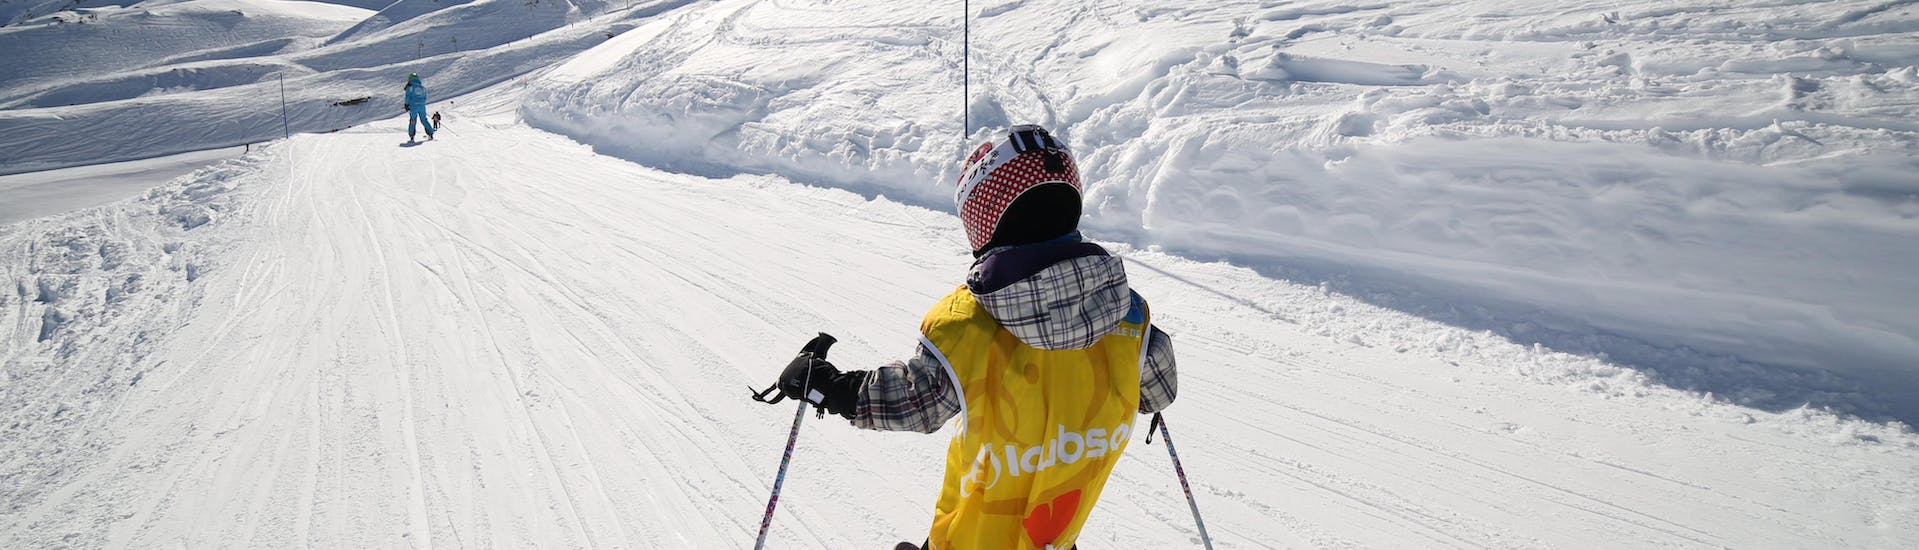 A youg skier is skiing down a snowy slope during his Private Ski Lessons for Kids - Low Season - All Ages with the ski school ESI Font Romeu.